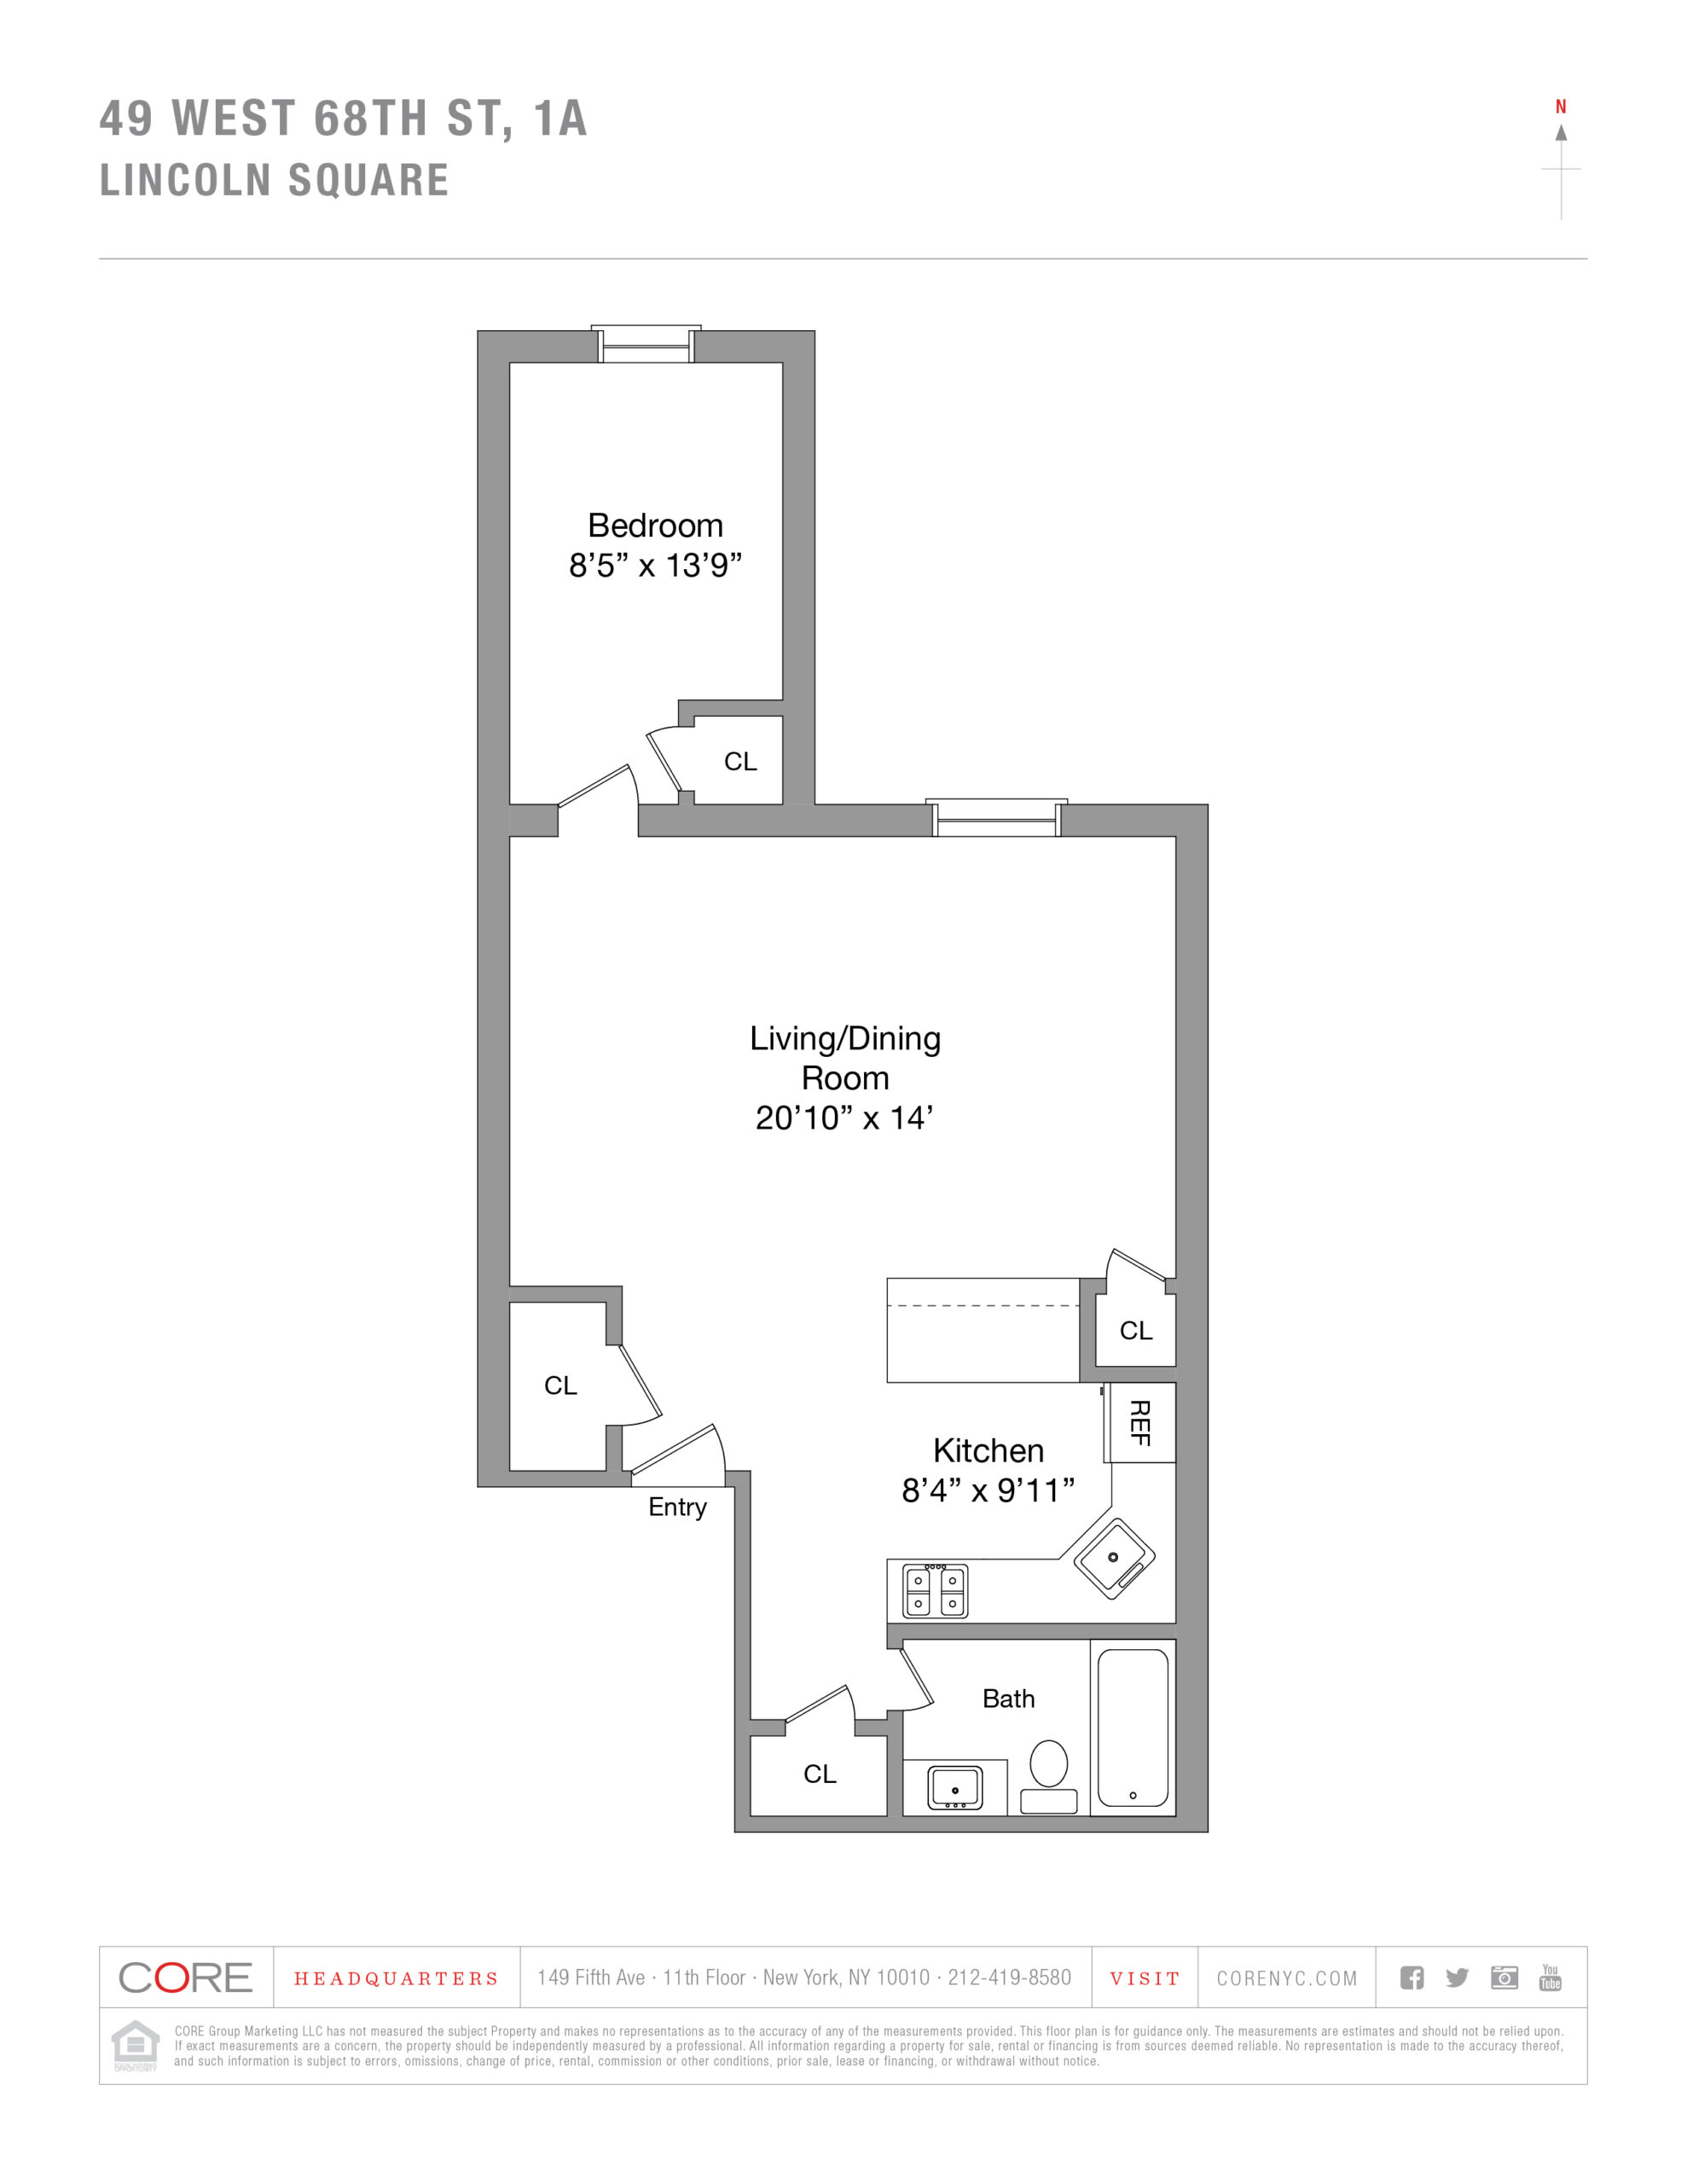 49 West 68th St. 1-A, New York, NY 10023